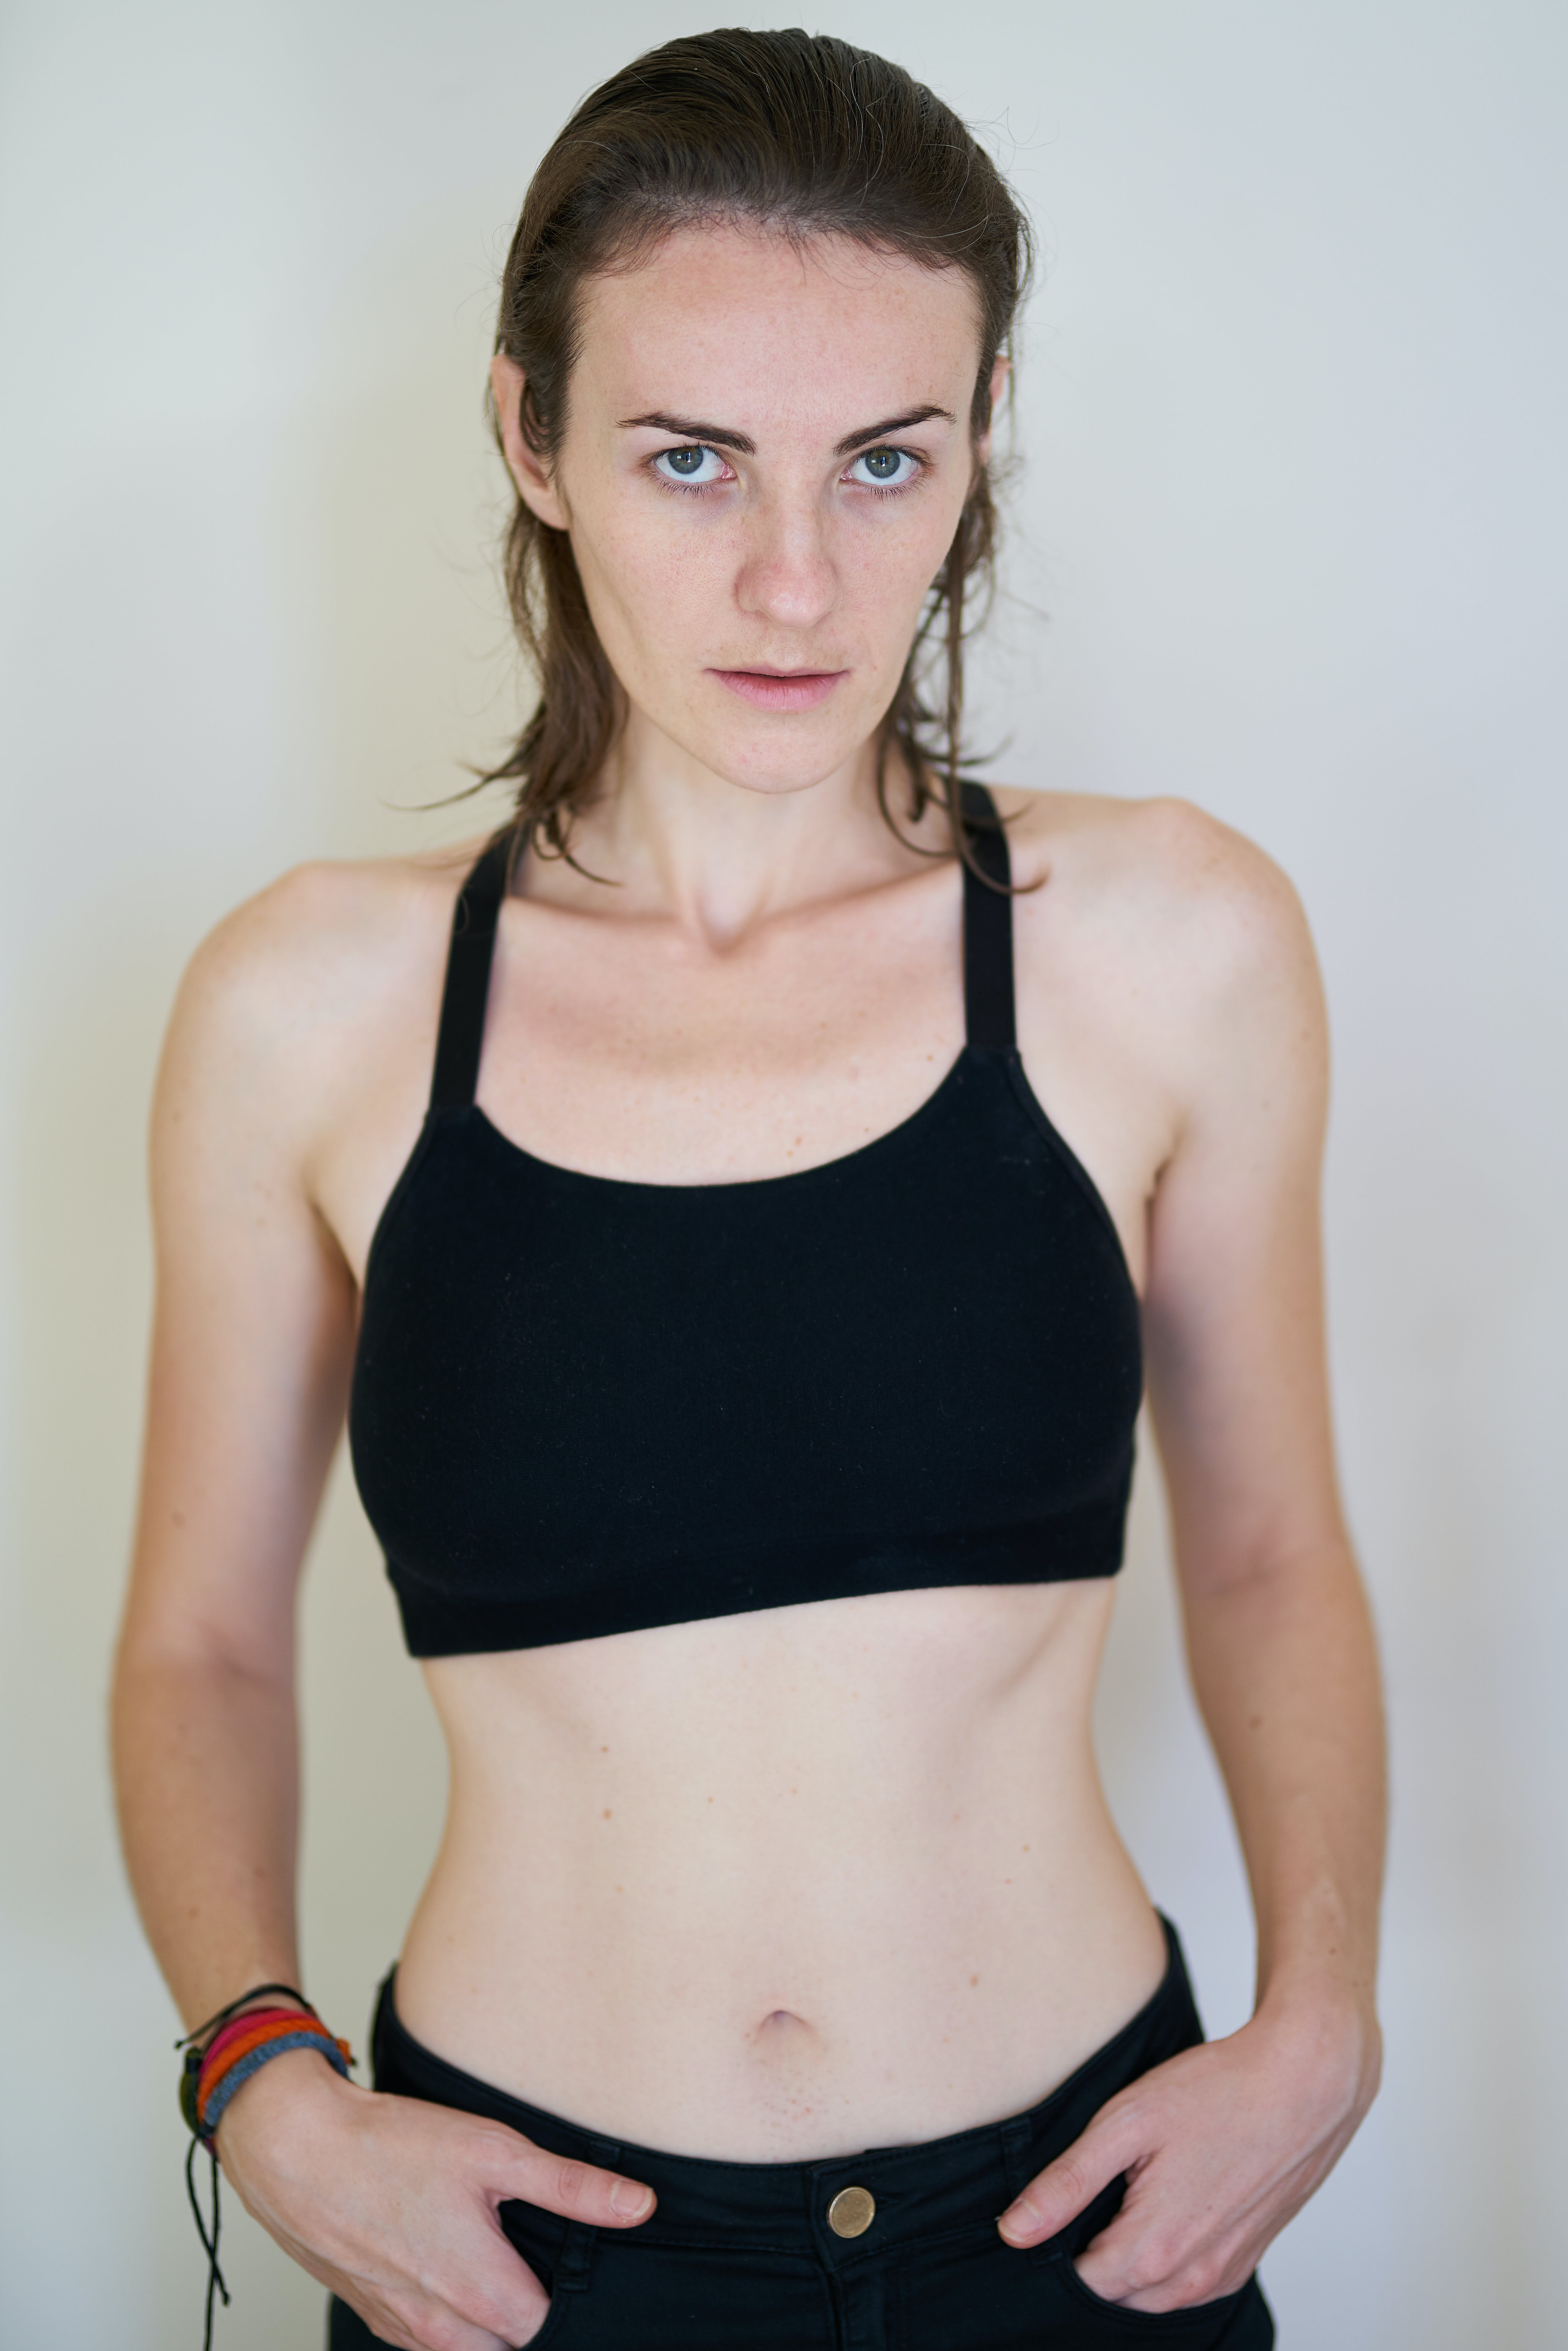 Woman in Black Sports Bra